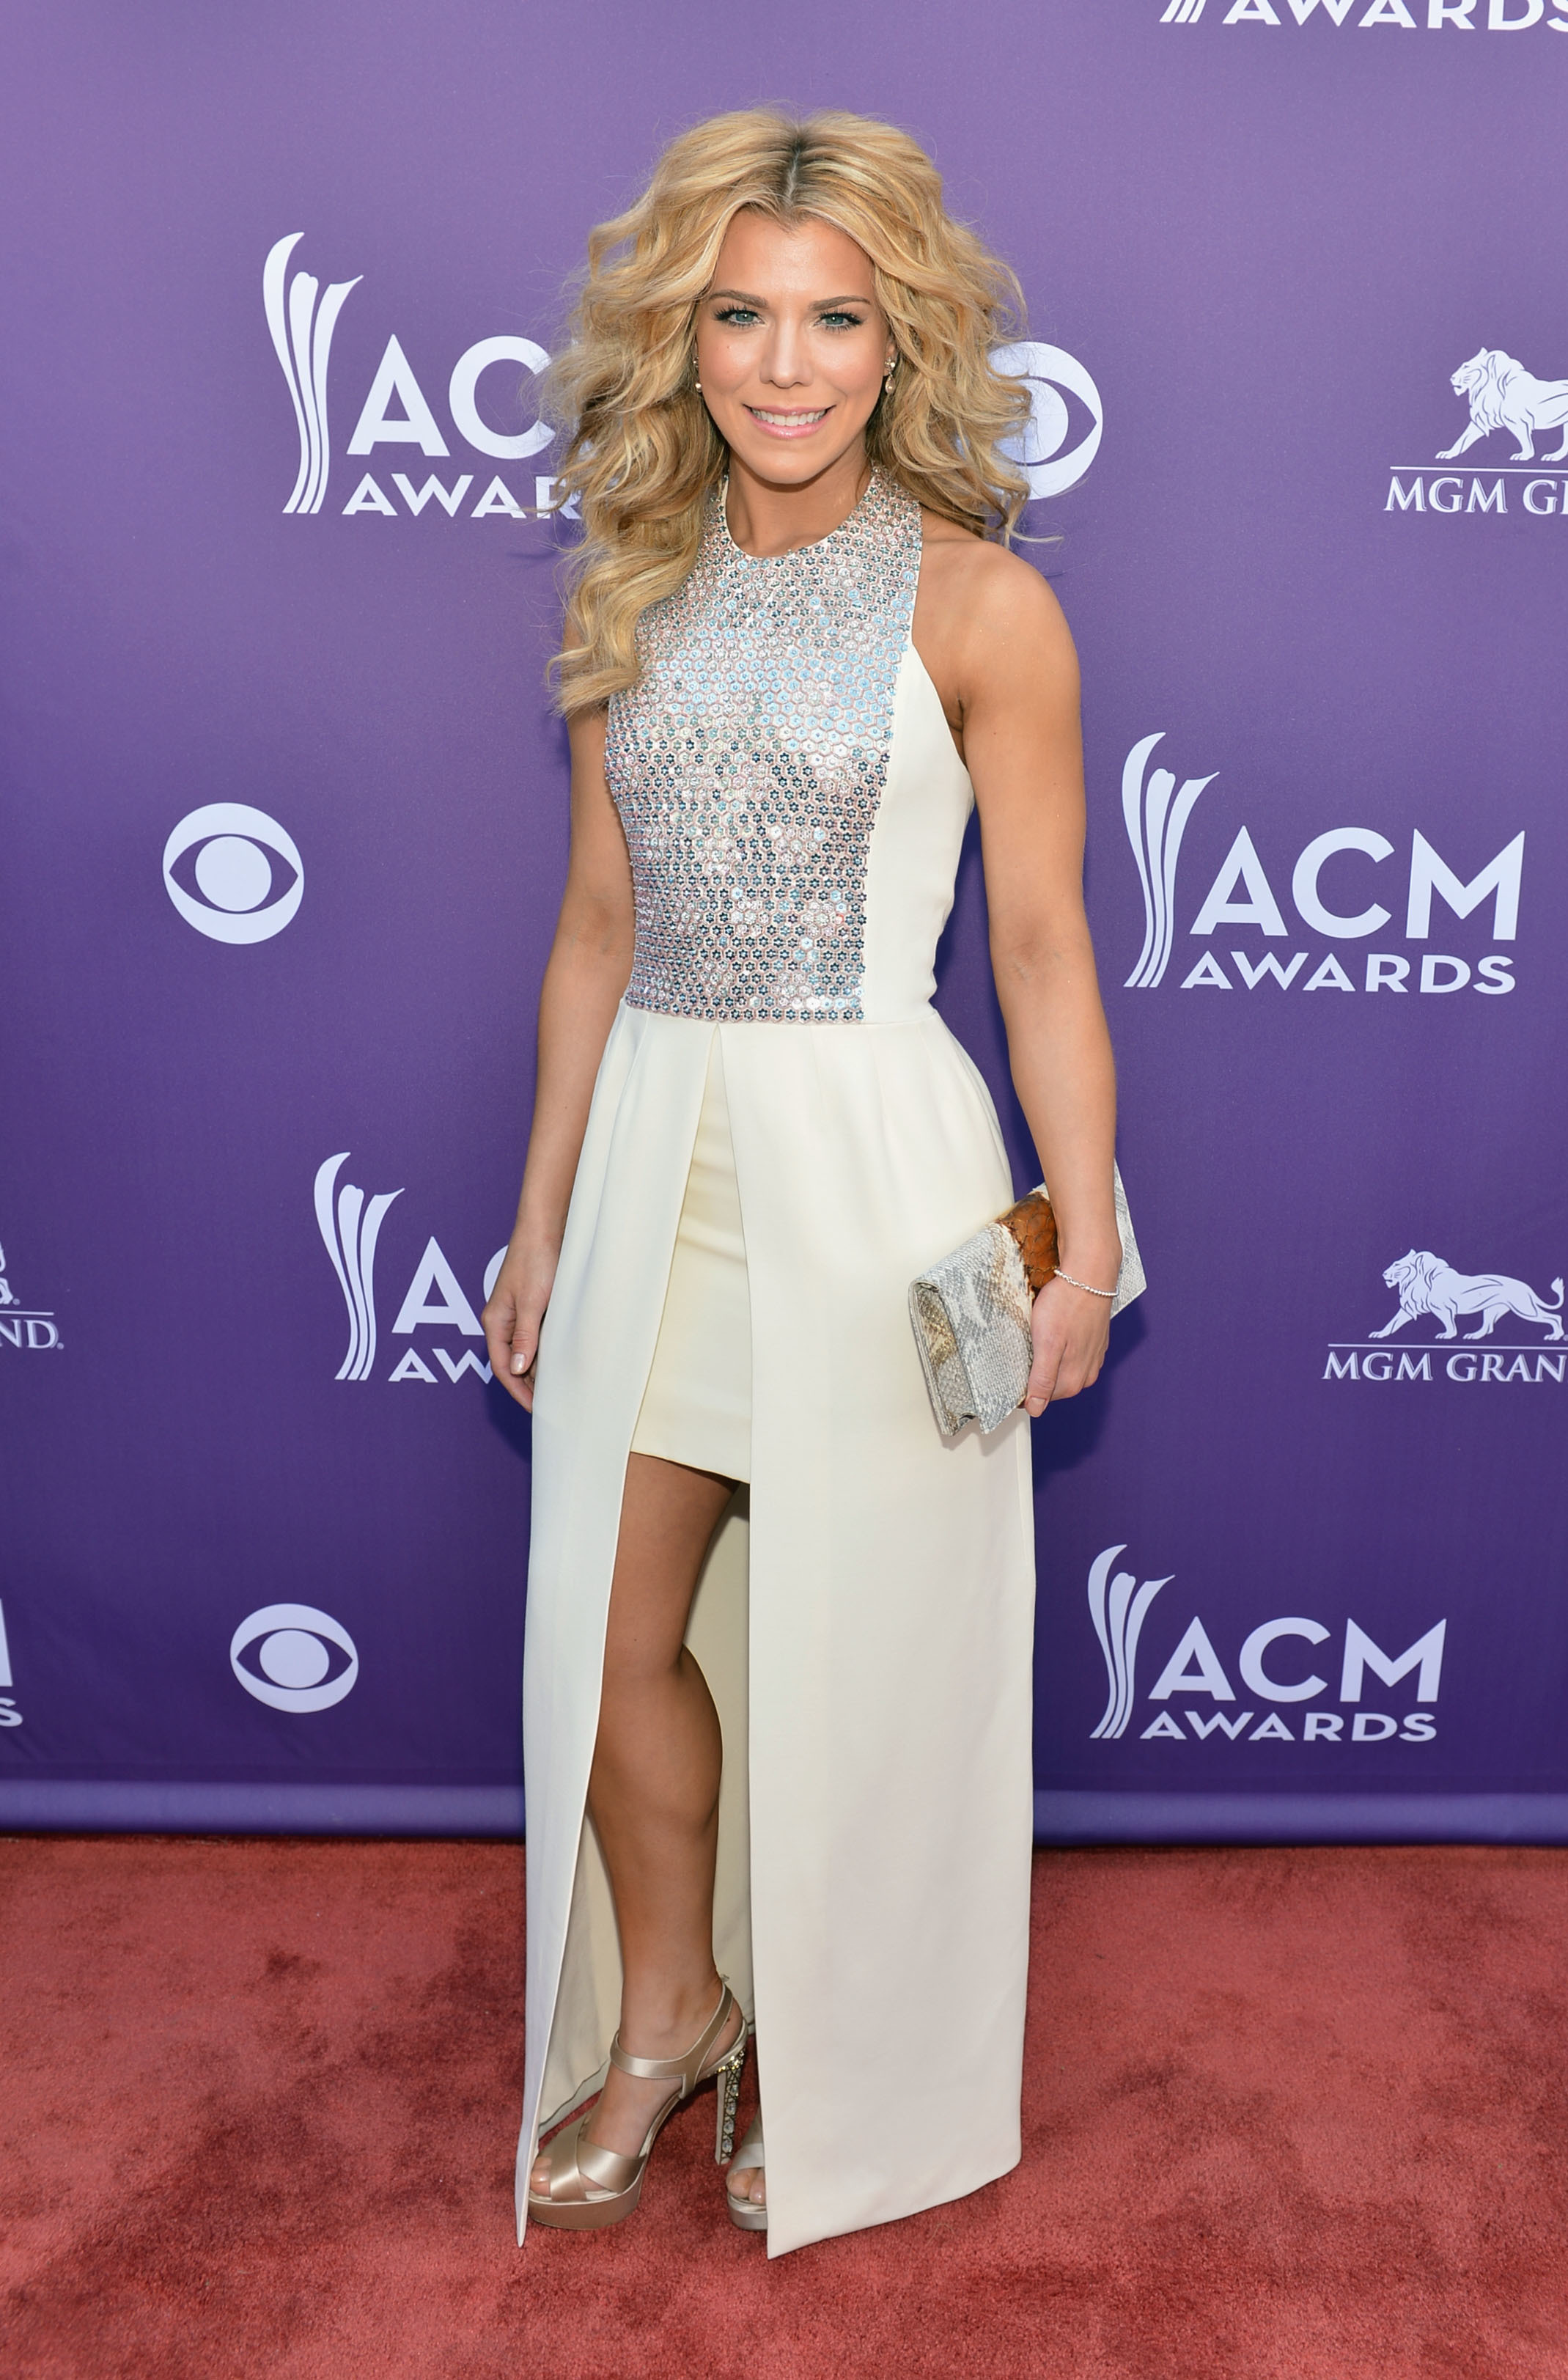 Kimberly Perry white silver dress 2013 ACM Awards